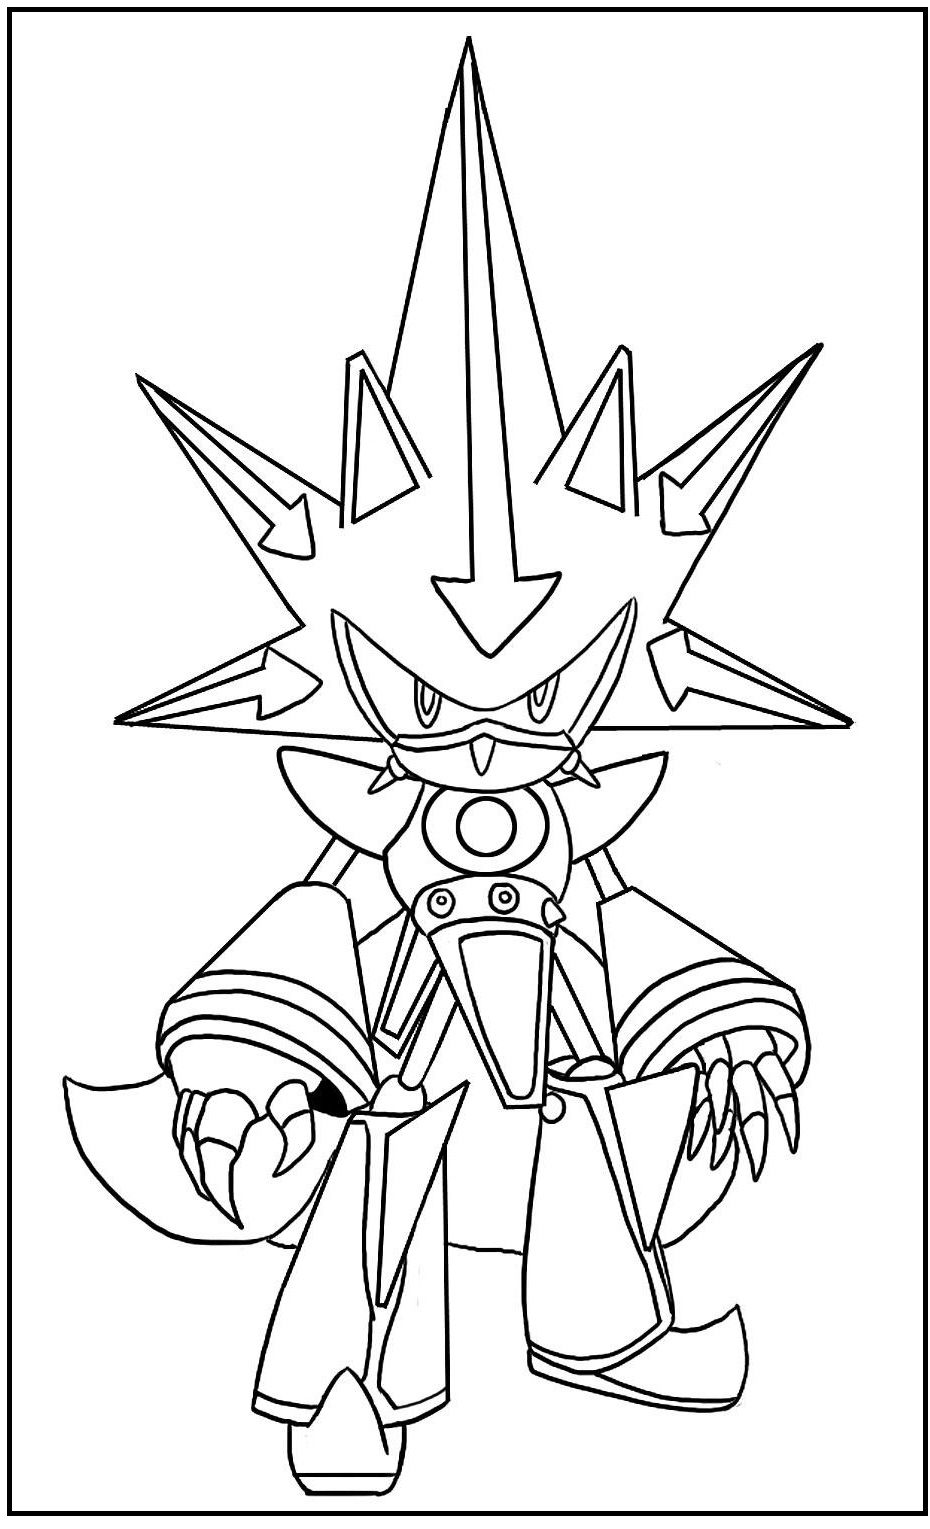 Picture Neo Metal Sonic Coloring Pages For Kids F8q Printable Sonic The Hedgehog Coloring Pag Sonic Para Colorear Paginas Para Colorear Como Dibujar A Sonic